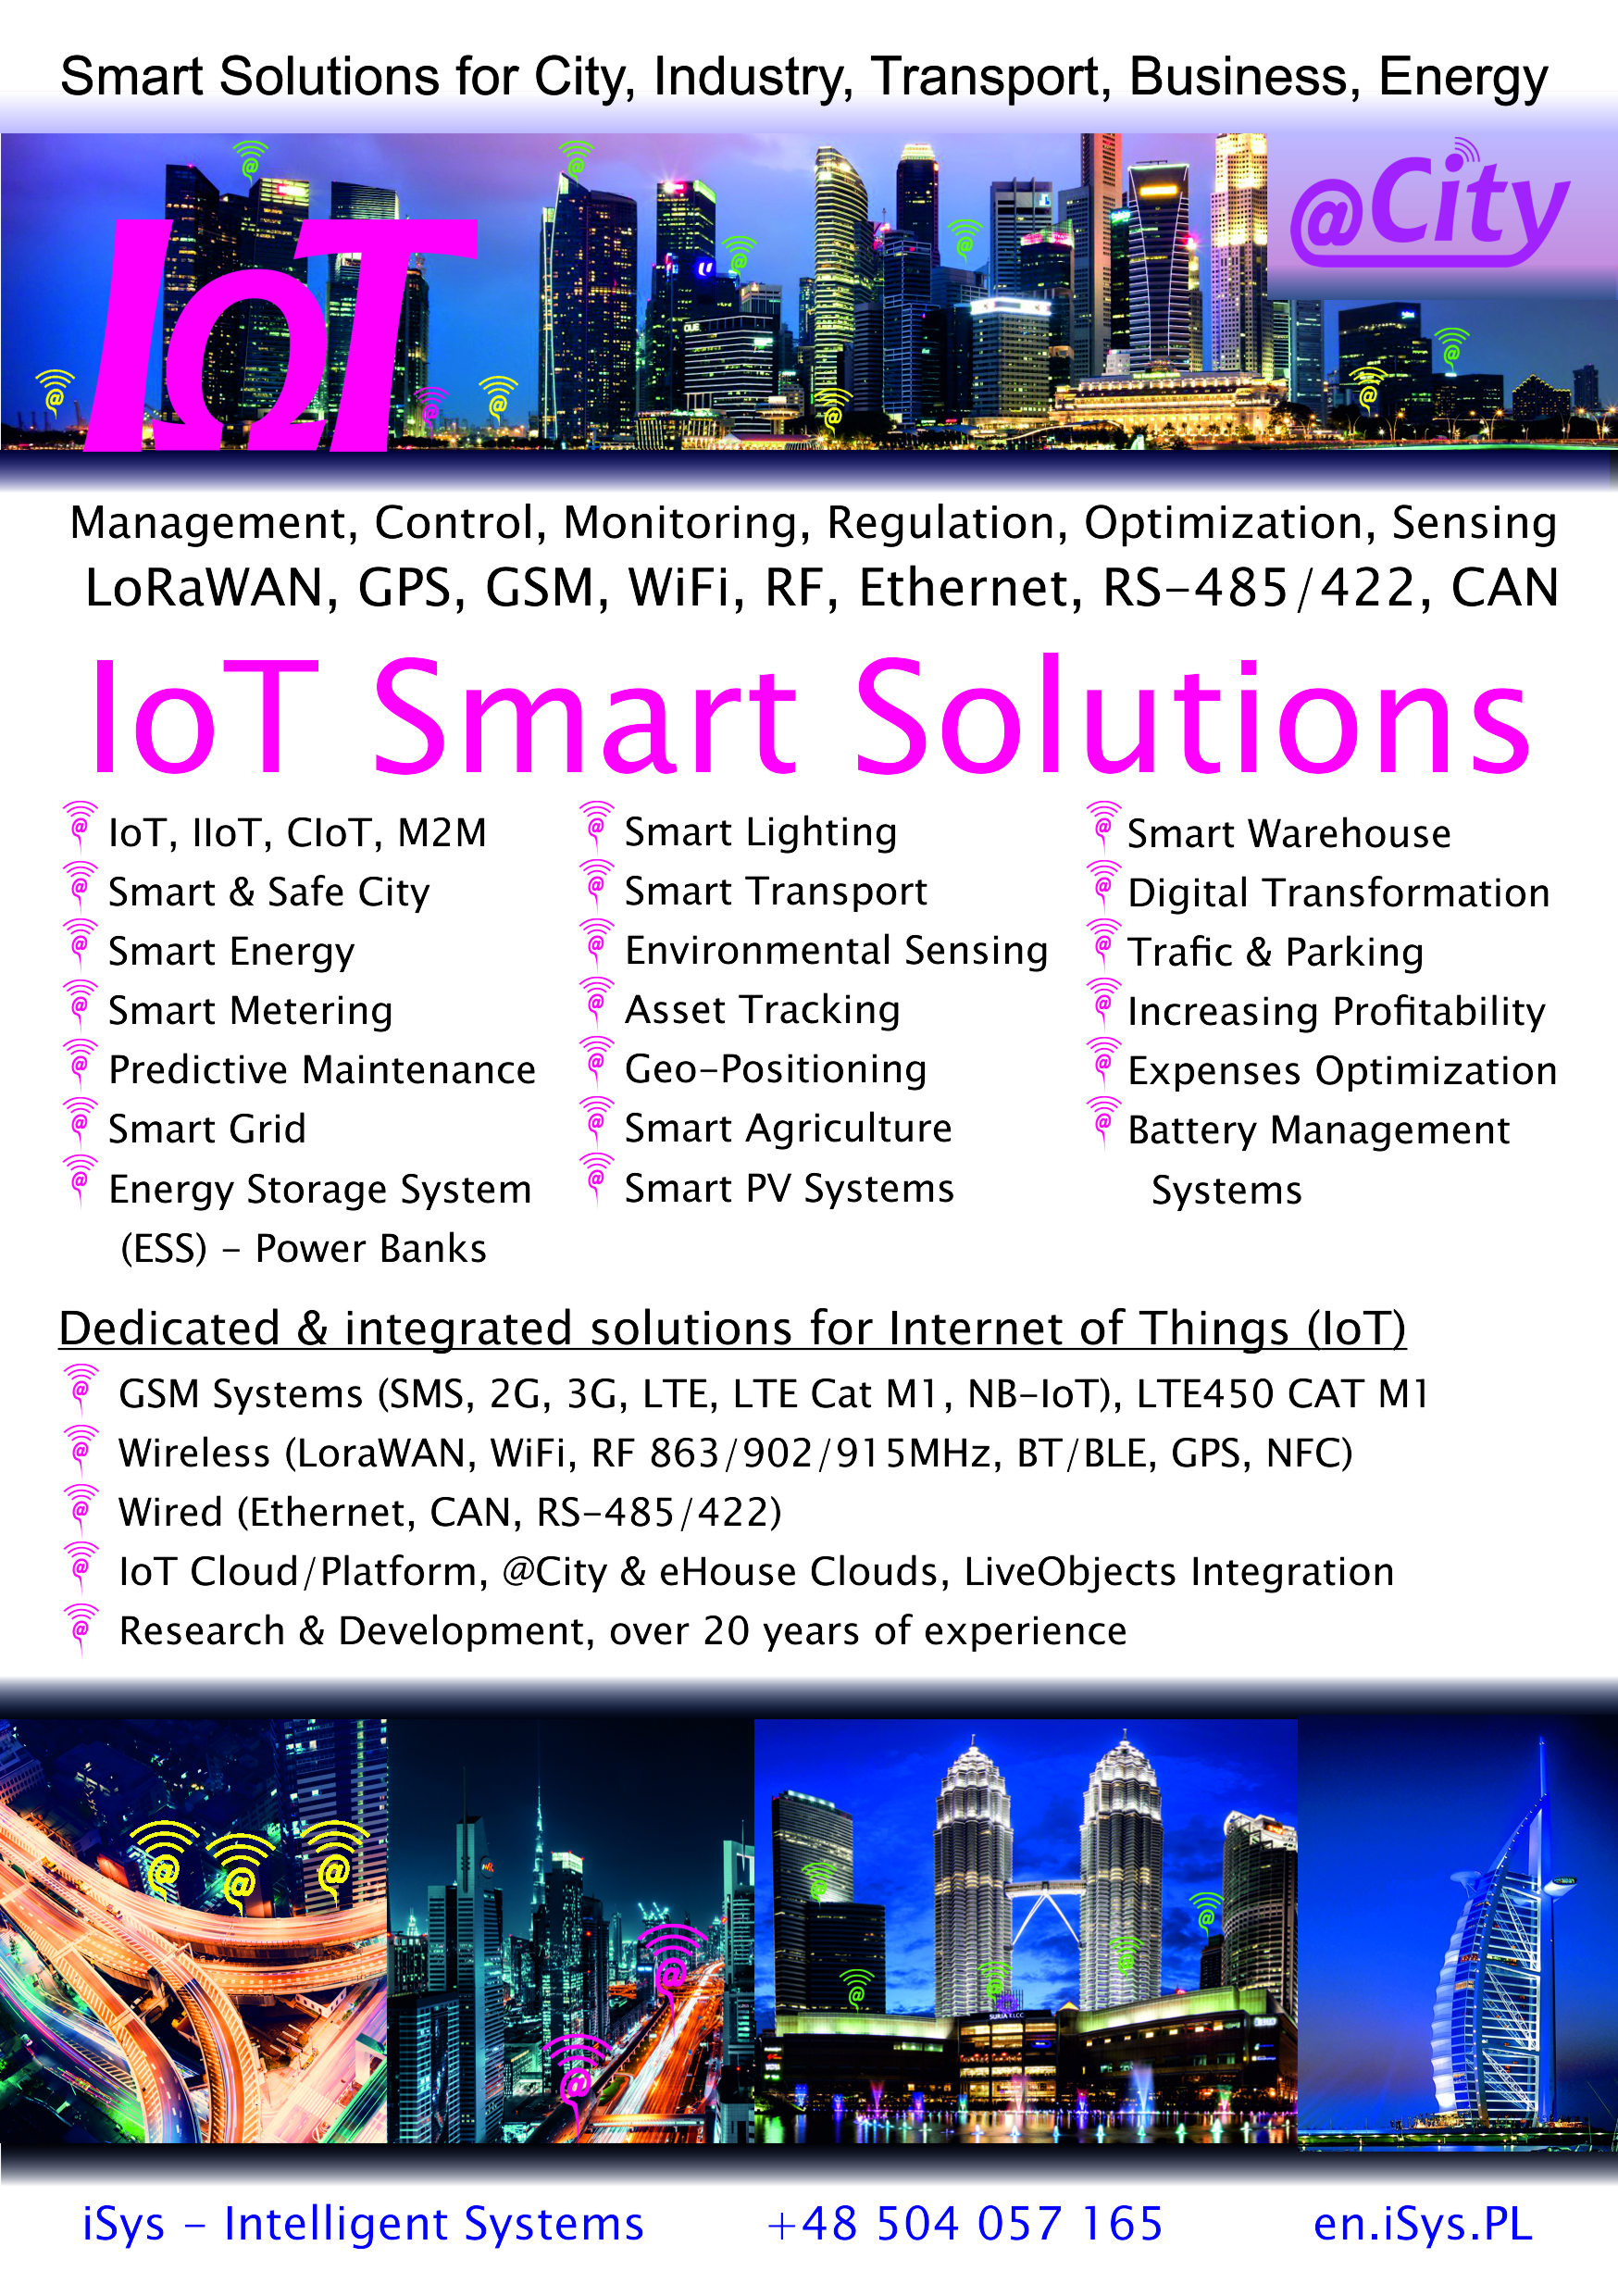 IoT/IIoT LoRaWAN, GSM, WiFi Solutions and Applications